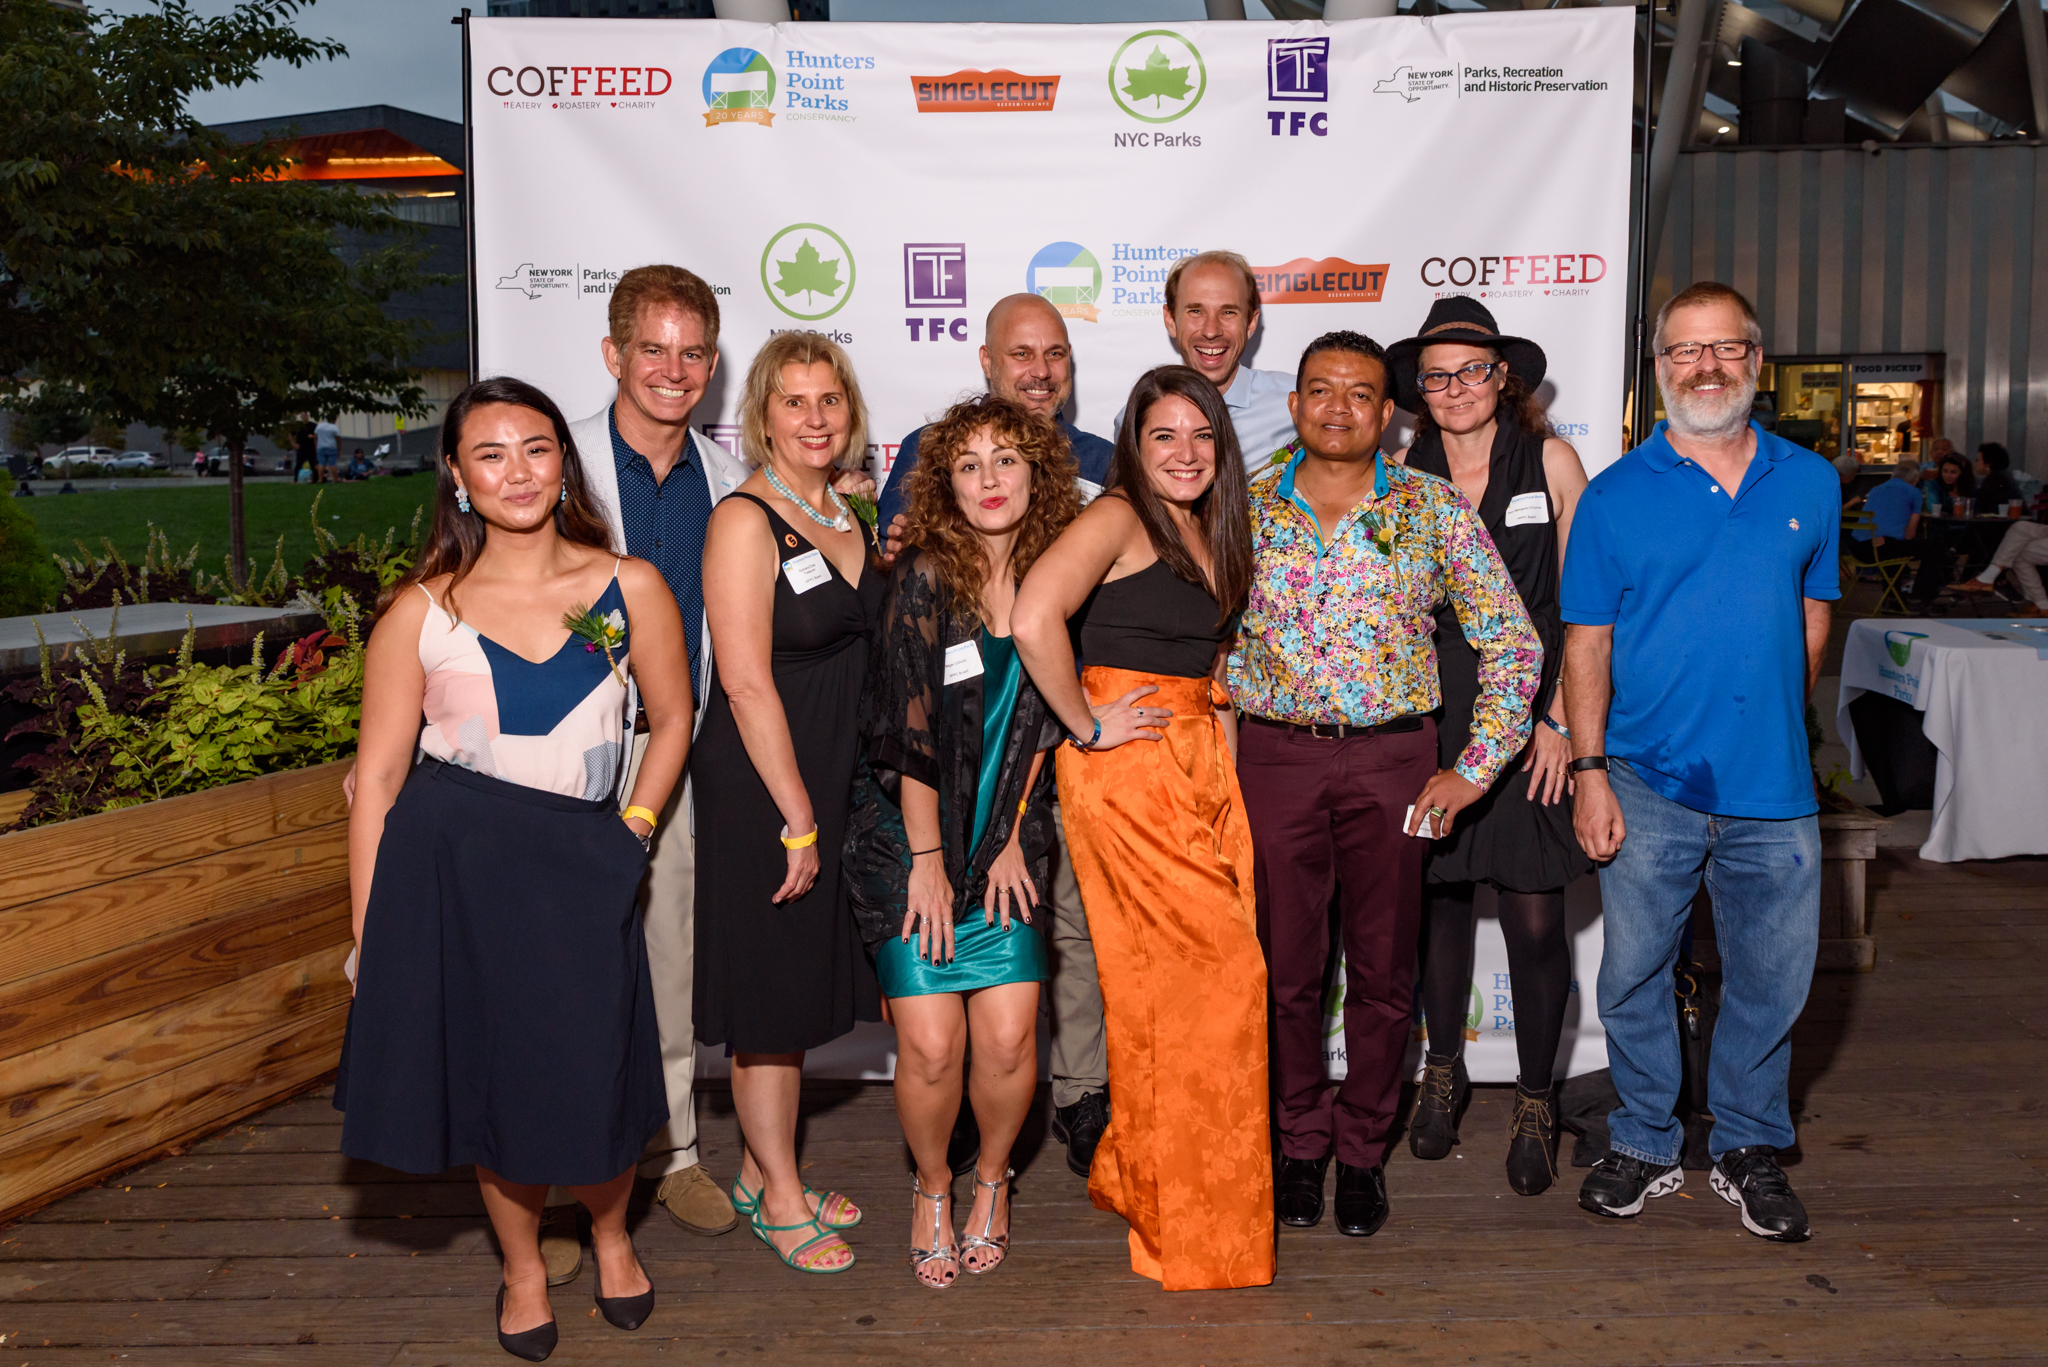 Board Members (from Left to Right): Lilian Chen, Rob Basch, Barbara Etzel, Megan DiBello, Christian Murray, Ann Sansaricq, Matthew Wallace, Mark Christie, Ann Margaret O'Connor, Matt Quigley